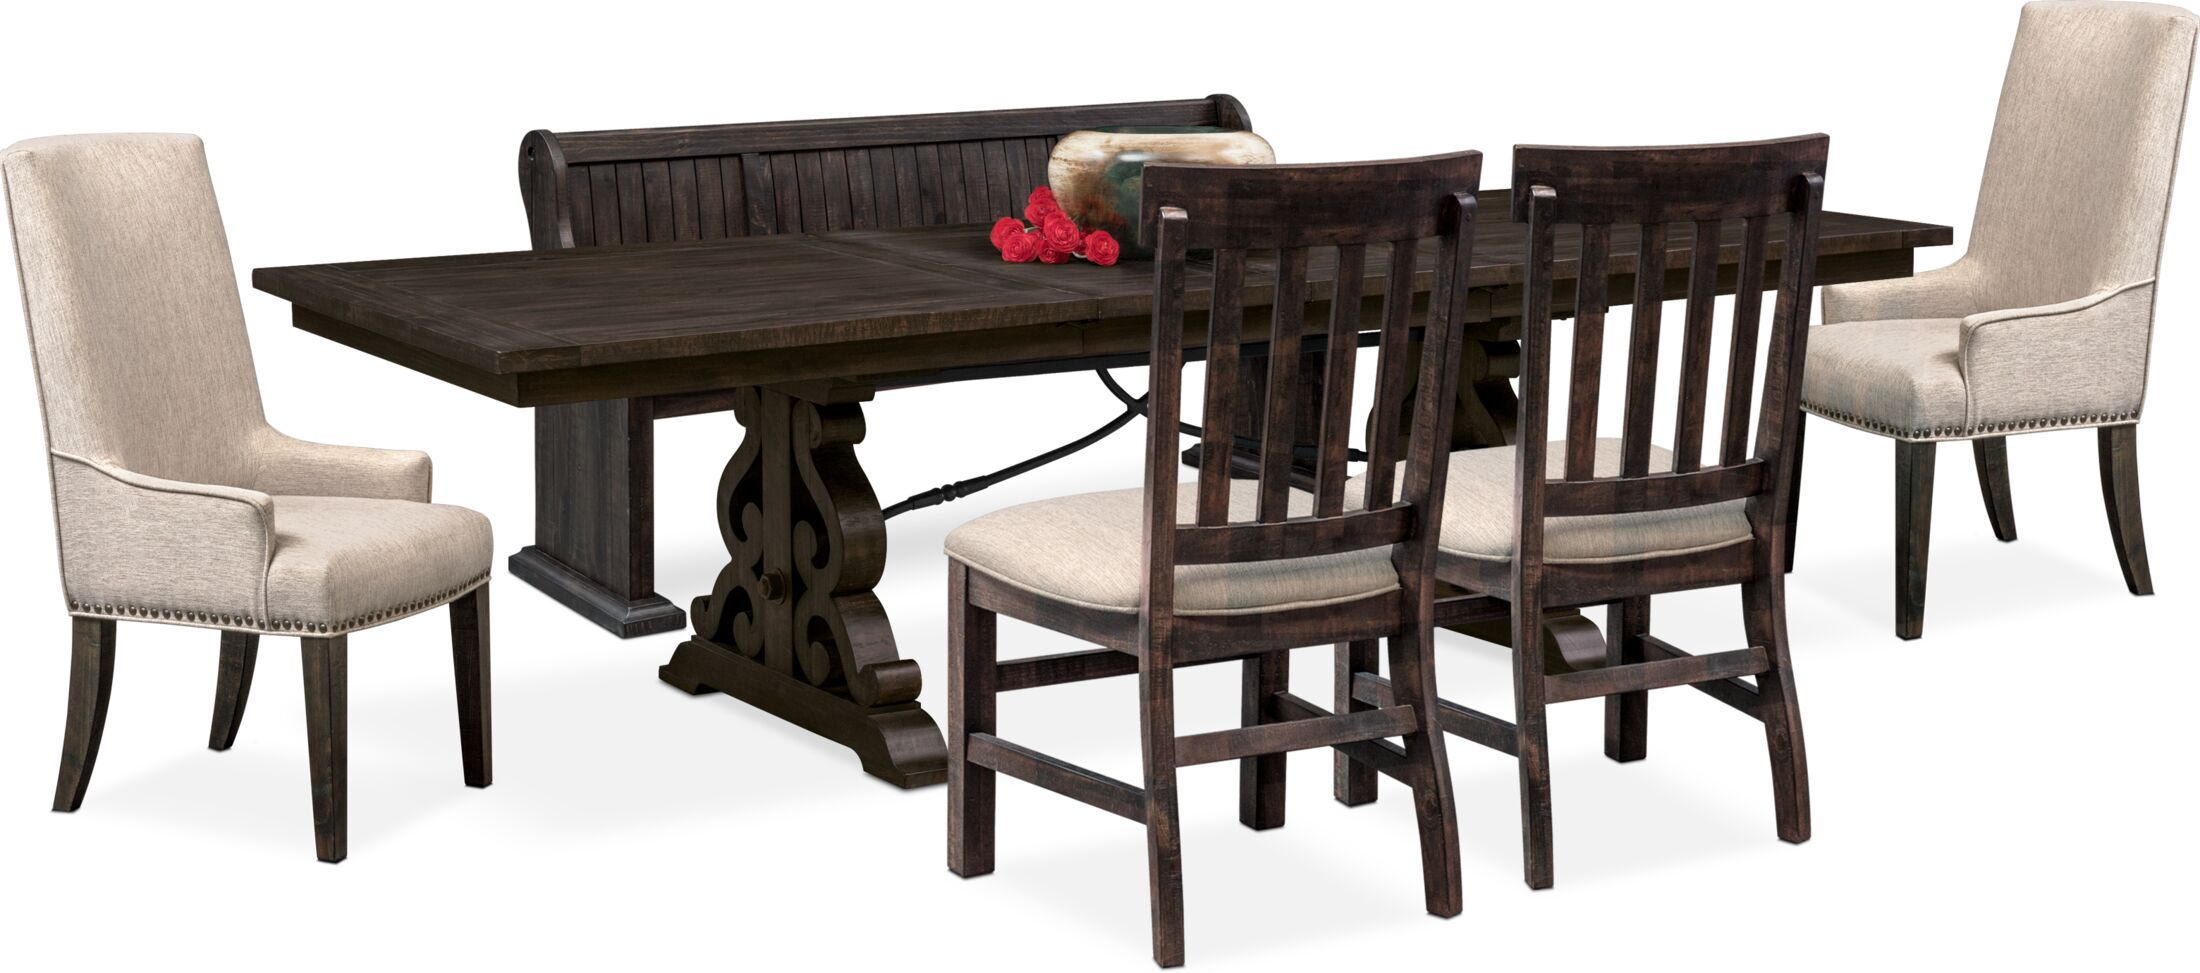 Dining Room Furniture - Charthouse Rectangular Dining Table, 2 Host Chairs, 2 Dining Chairs and Bench